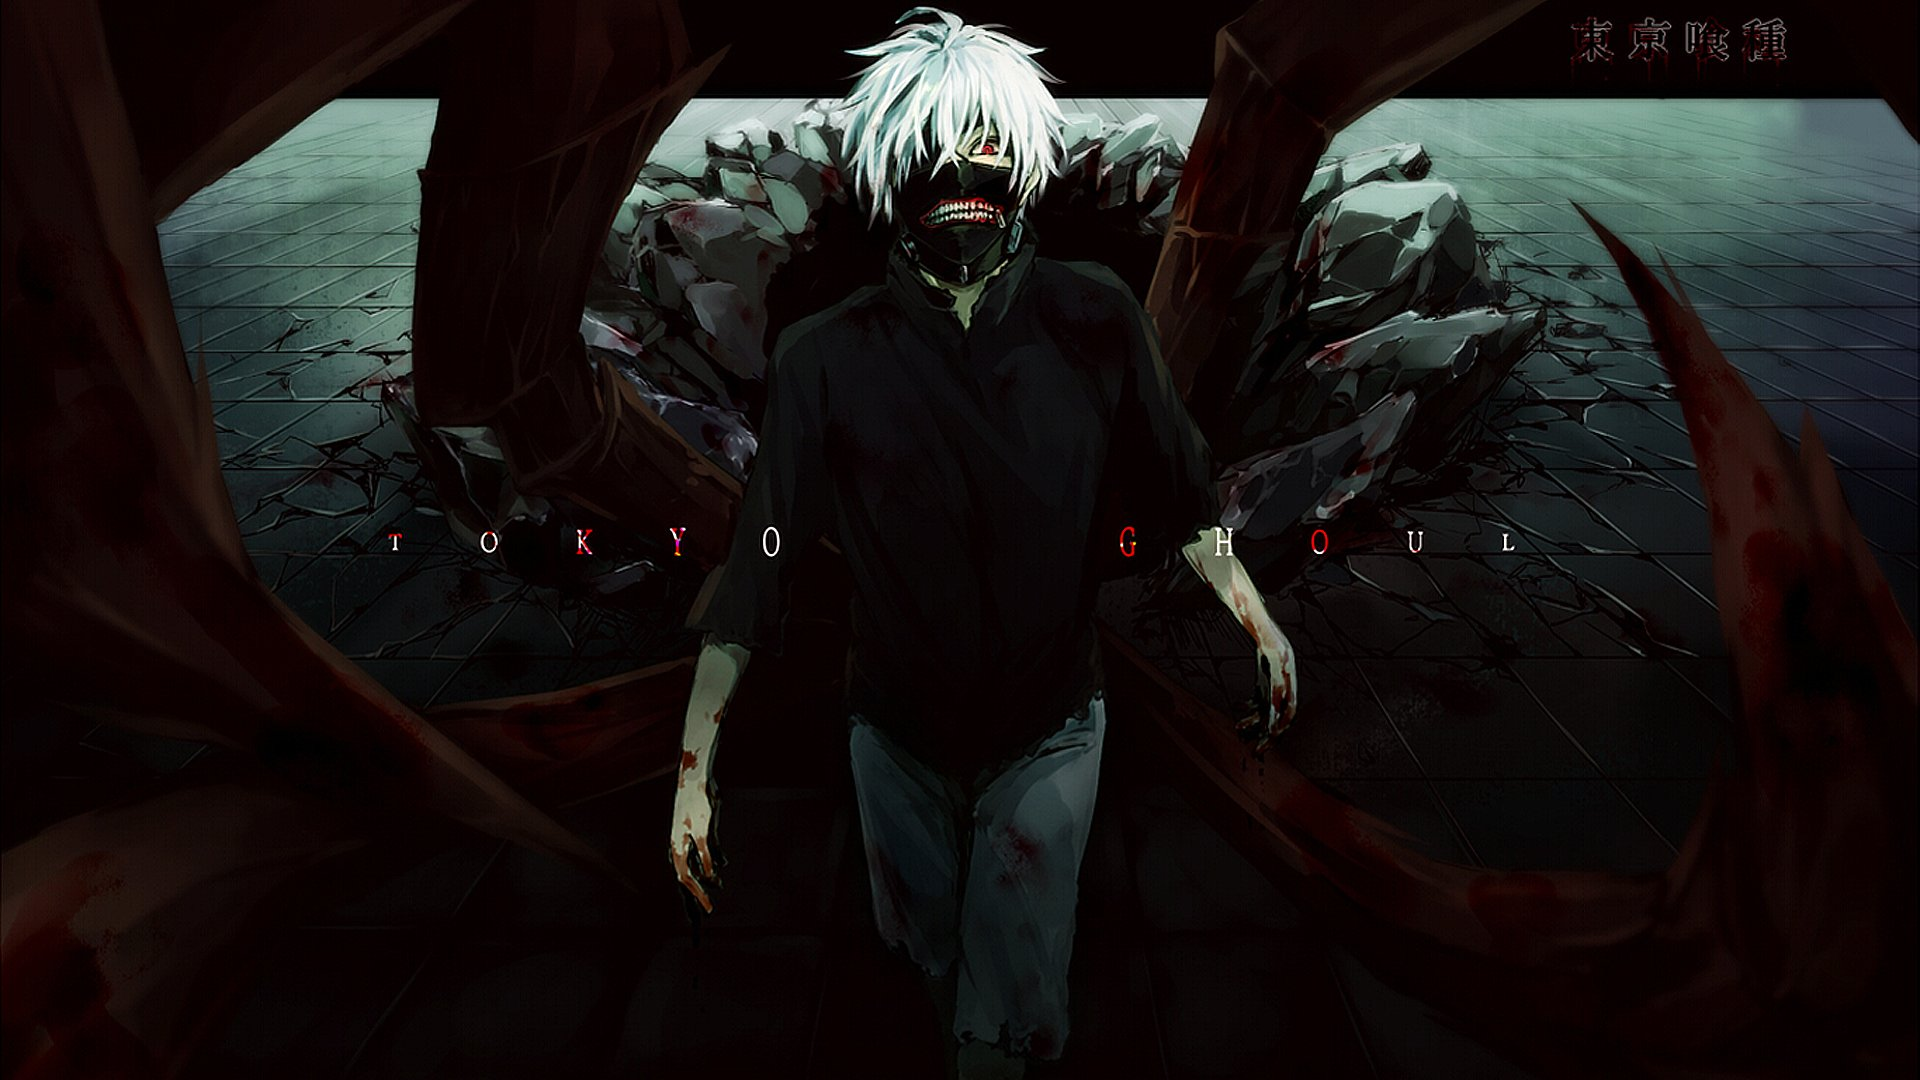 Tokyo Ghoul Kaneki Ghoul Form Hd Wallpaper Background